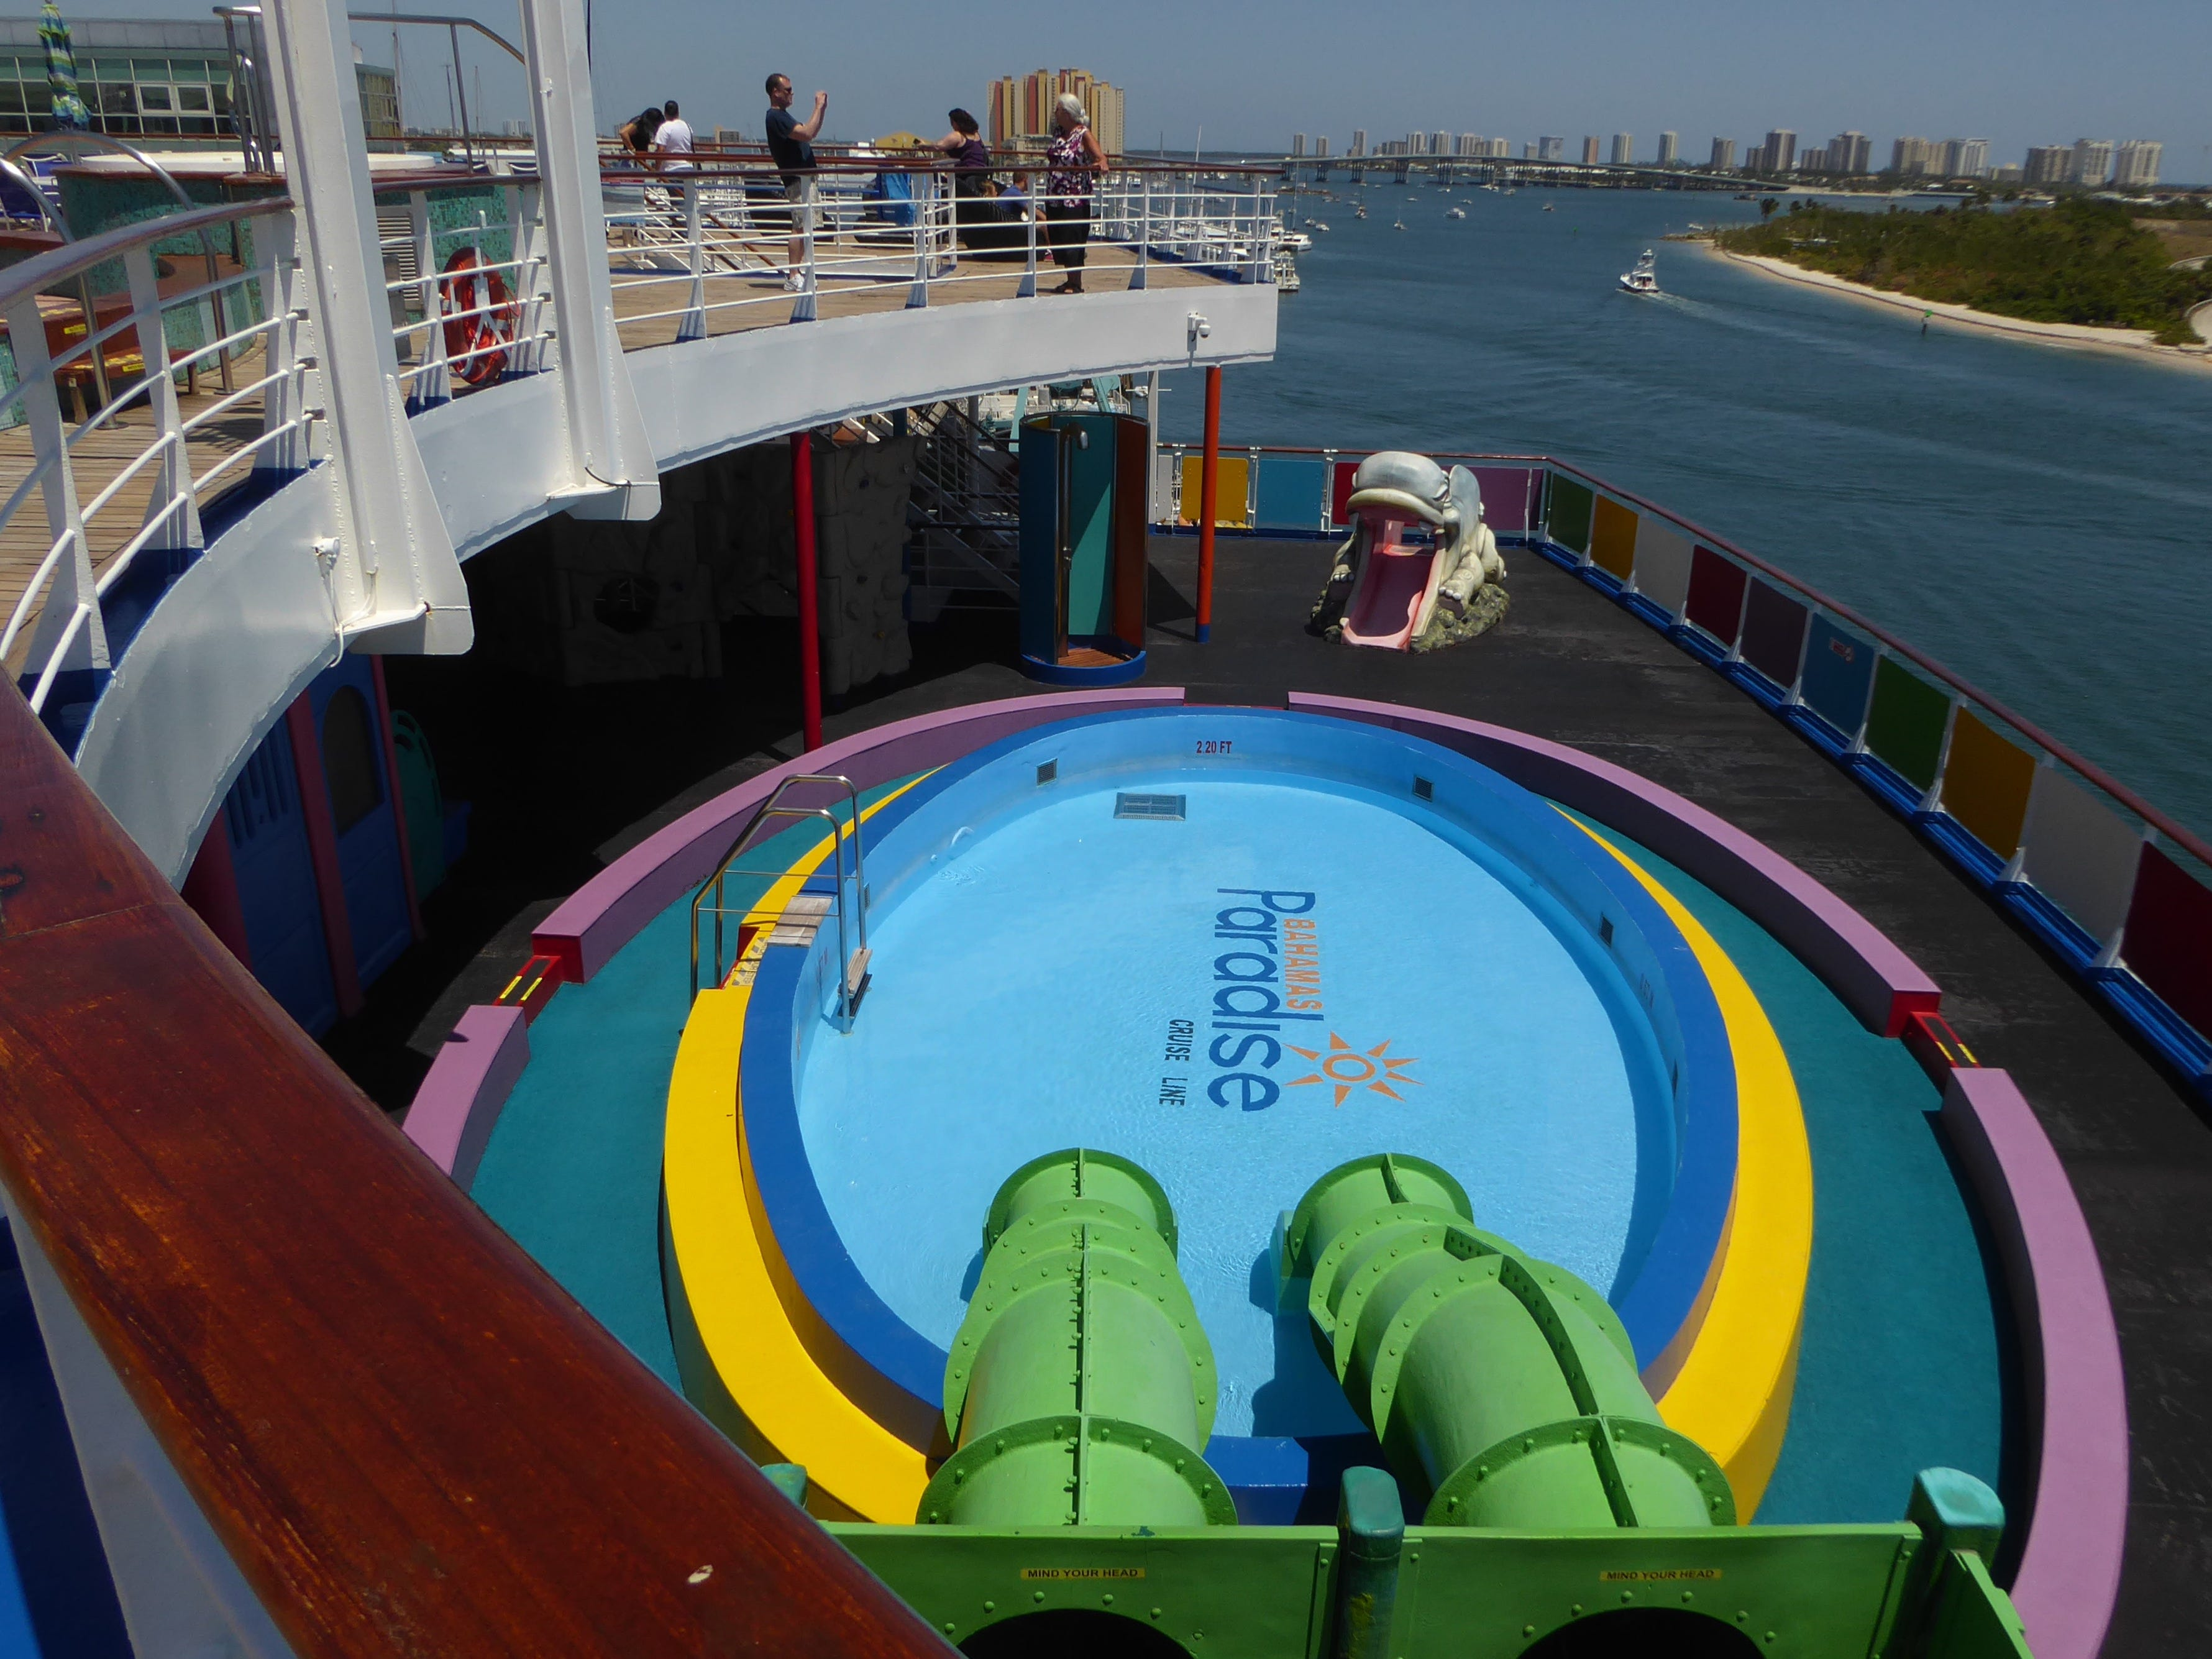 From aft Luna Deck, there is a nice view of the children's play area on aft Paradise Deck (9) and the Kruzers Pool, which is reserved for kids aged 3-7.